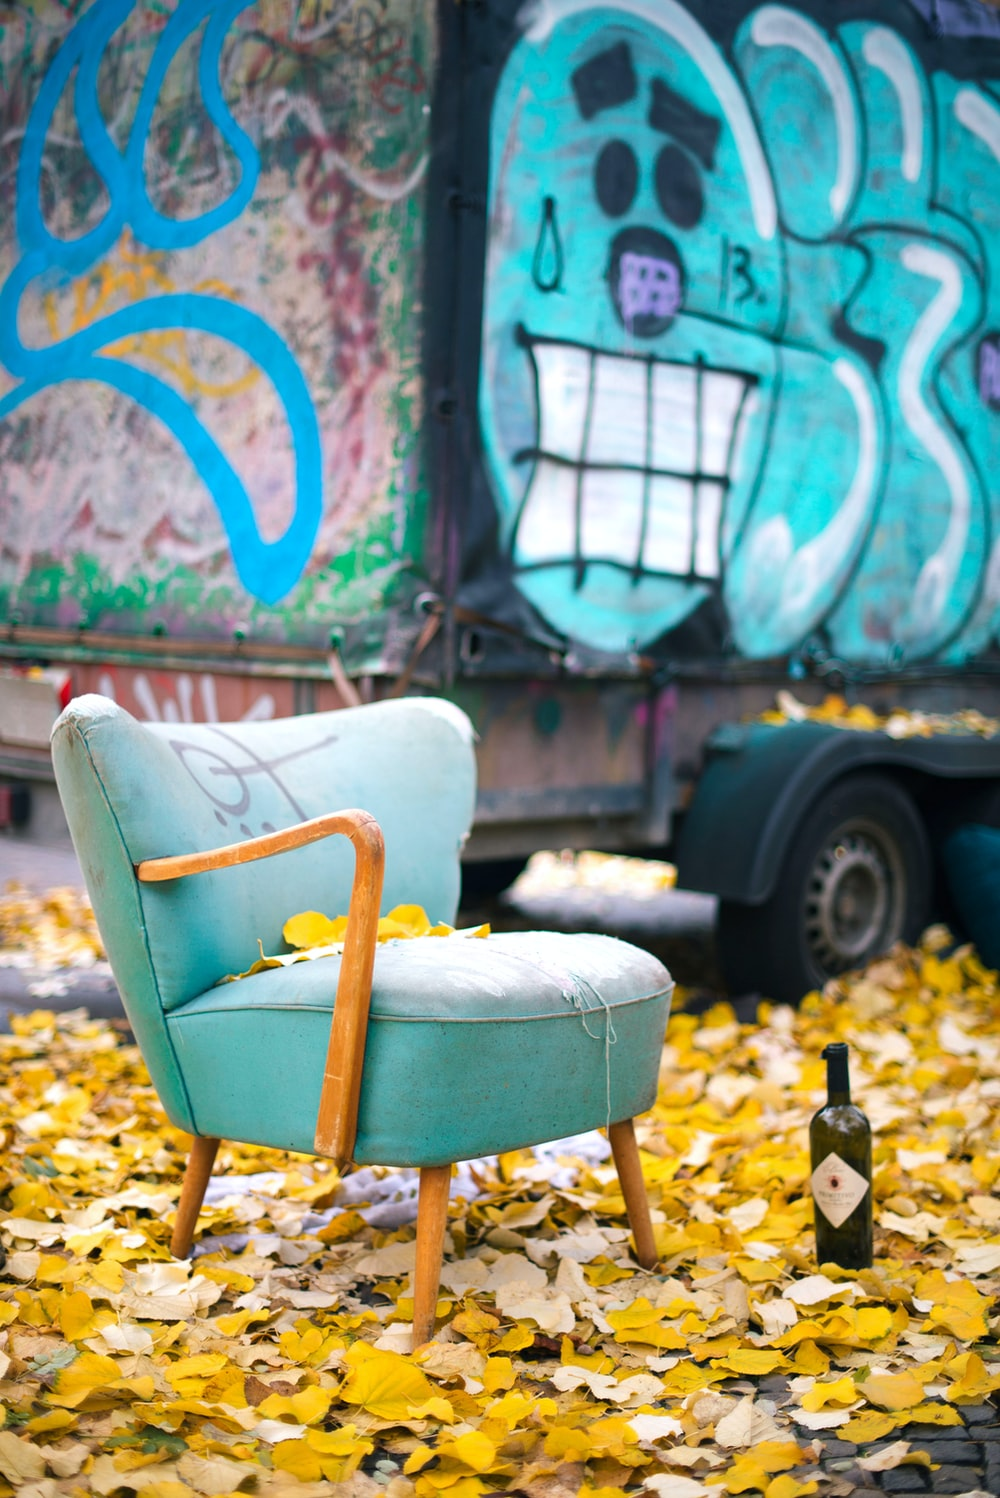 yellow and brown wooden chair beside blue and white graffiti wall